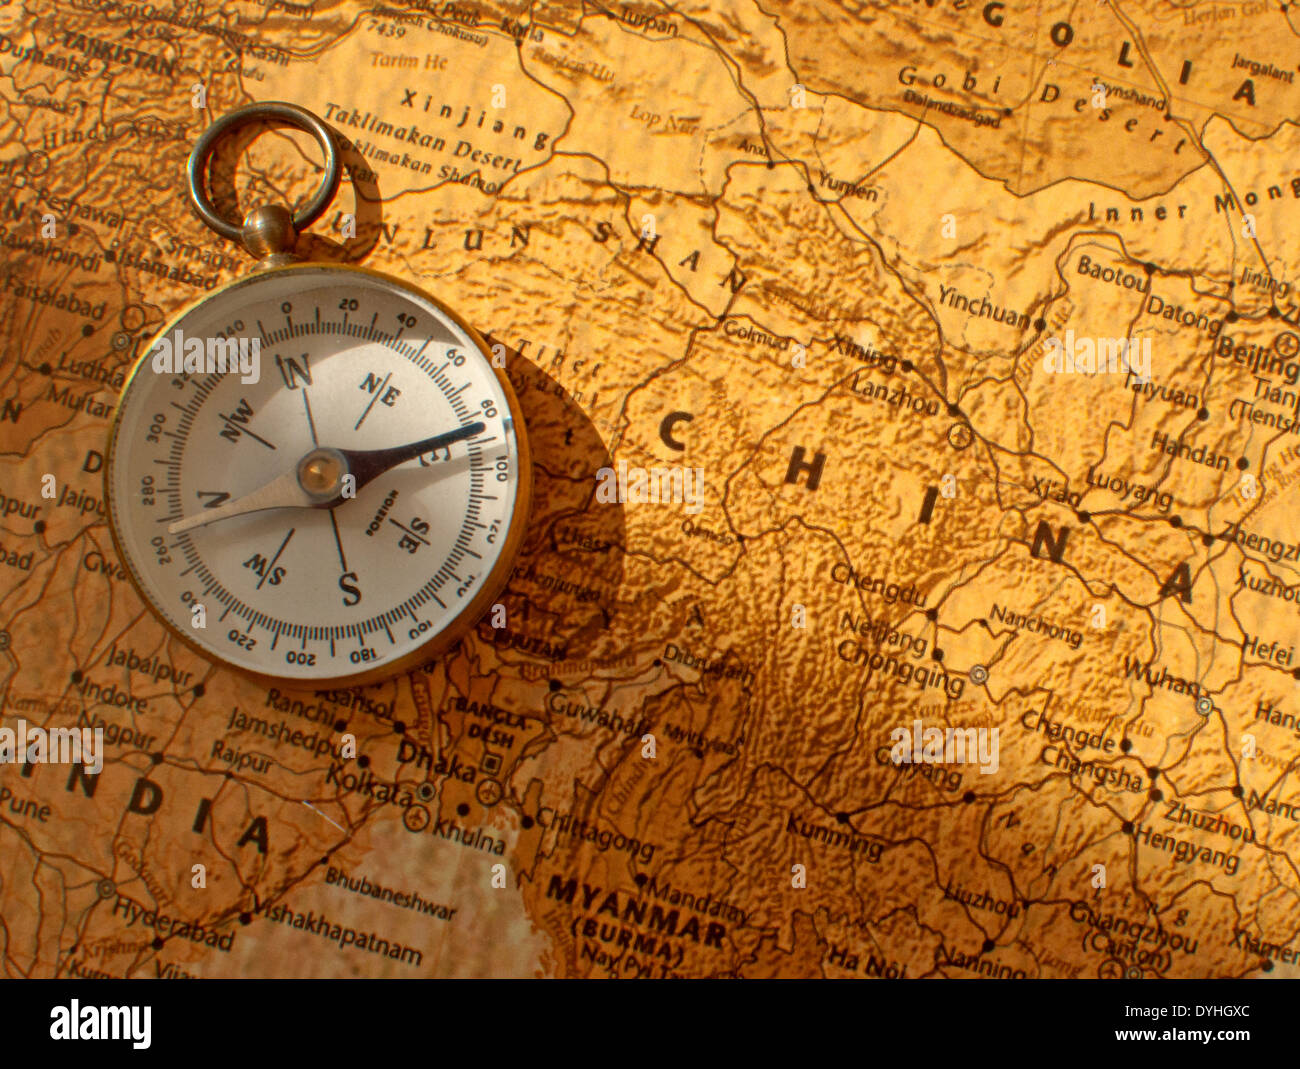 China Map Compass Stock Photos Images Alamy Printed Circuit Board Gua Of Image